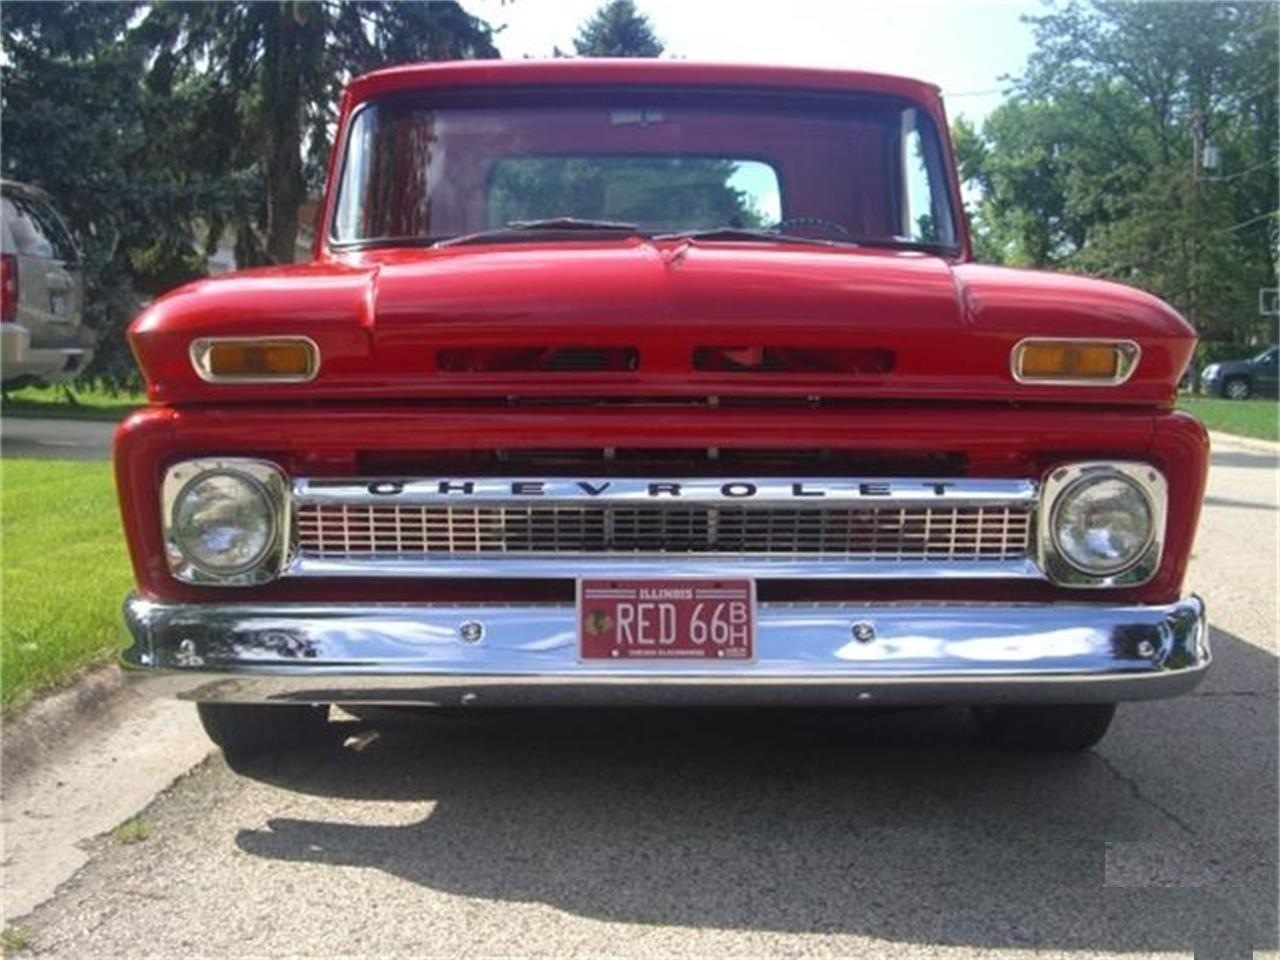 Large Picture of 1966 Pickup - $34,900.00 - 9HNB